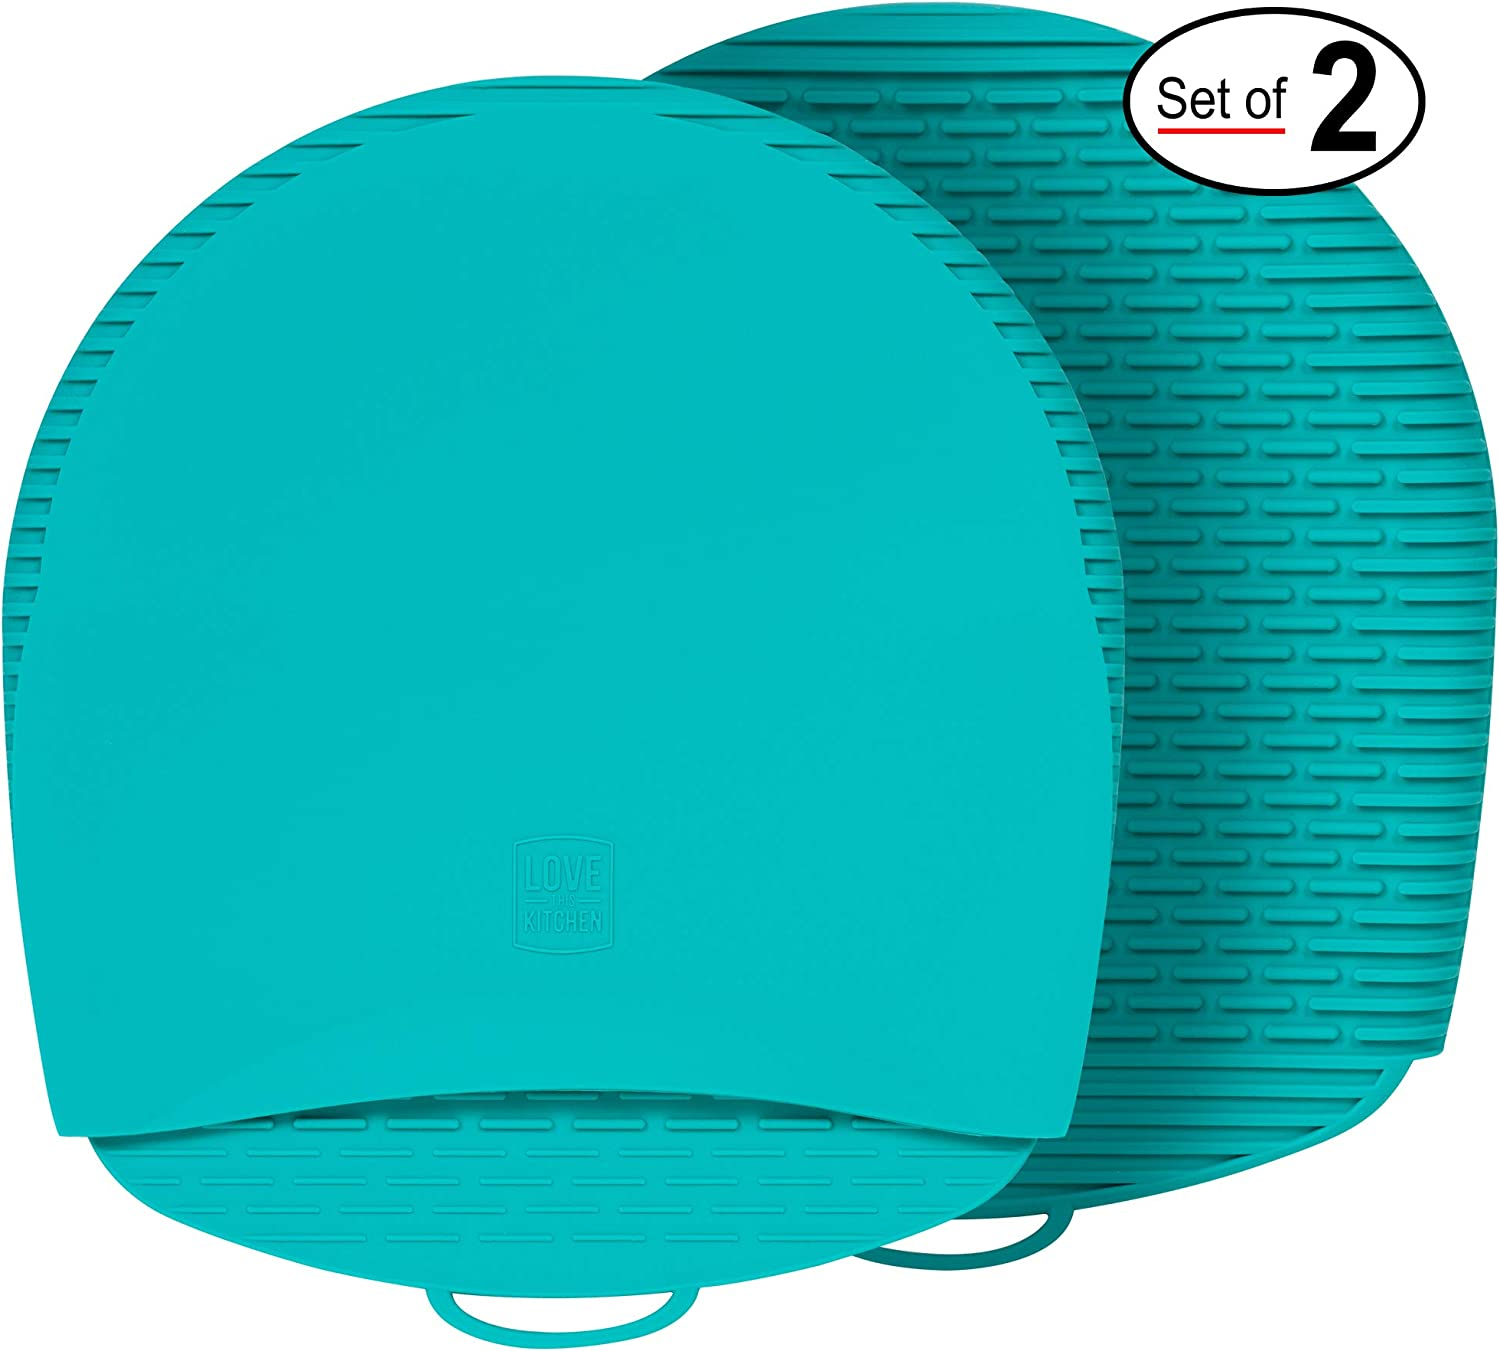 New for 2020! 100% Silicone Pot Holders & Oven Mitts. A Silicone Mitt is Healthier Than Cotton & Easier to Clean, Won't Grow Mold or Bacteria. Heat Resistant, Non-Slip & Flexible (Teal, 1 Pair)